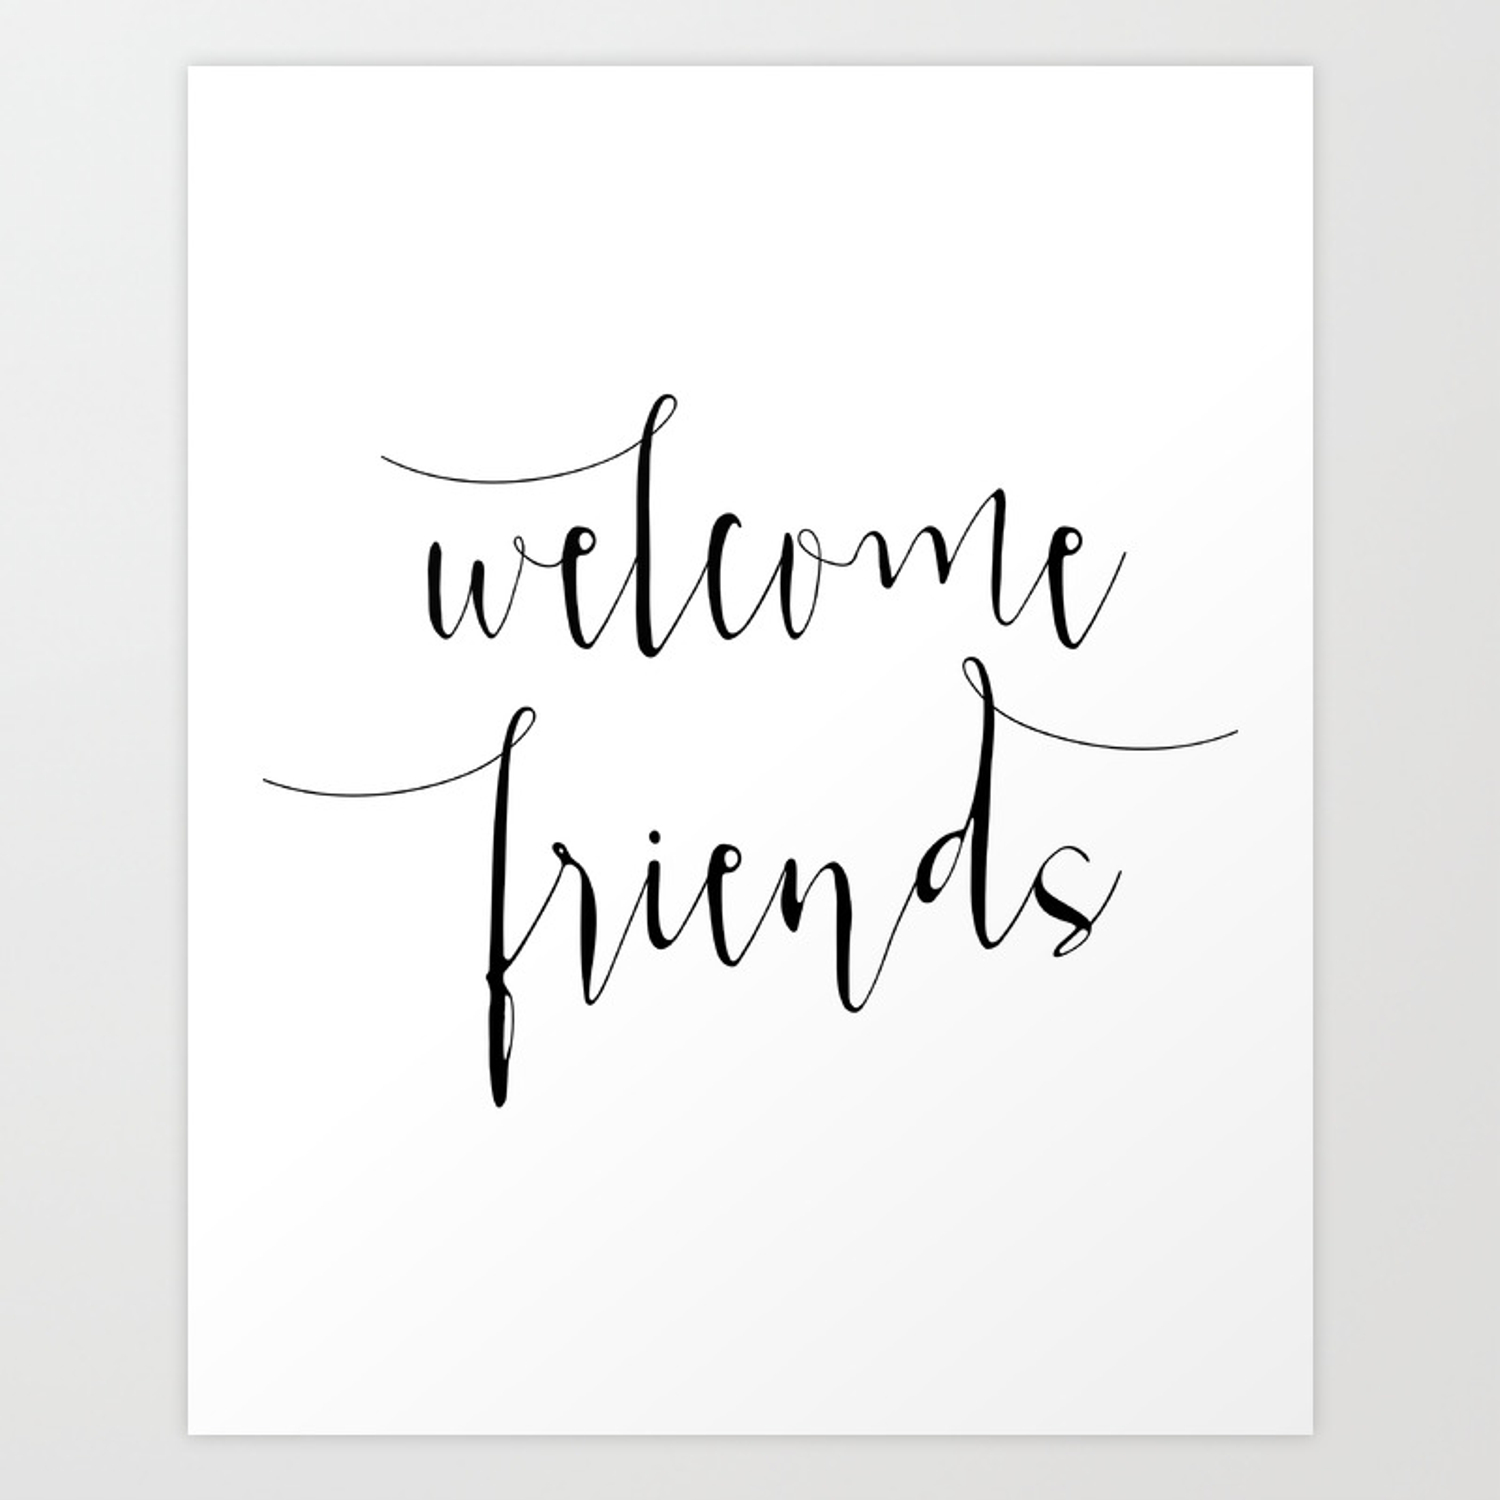 photograph regarding Printable Welcome Sign titled Inspirational Estimate Welcome Mates Quotation Print Typography Print Estimate Printable Household Welcome Indicator Artwork Print